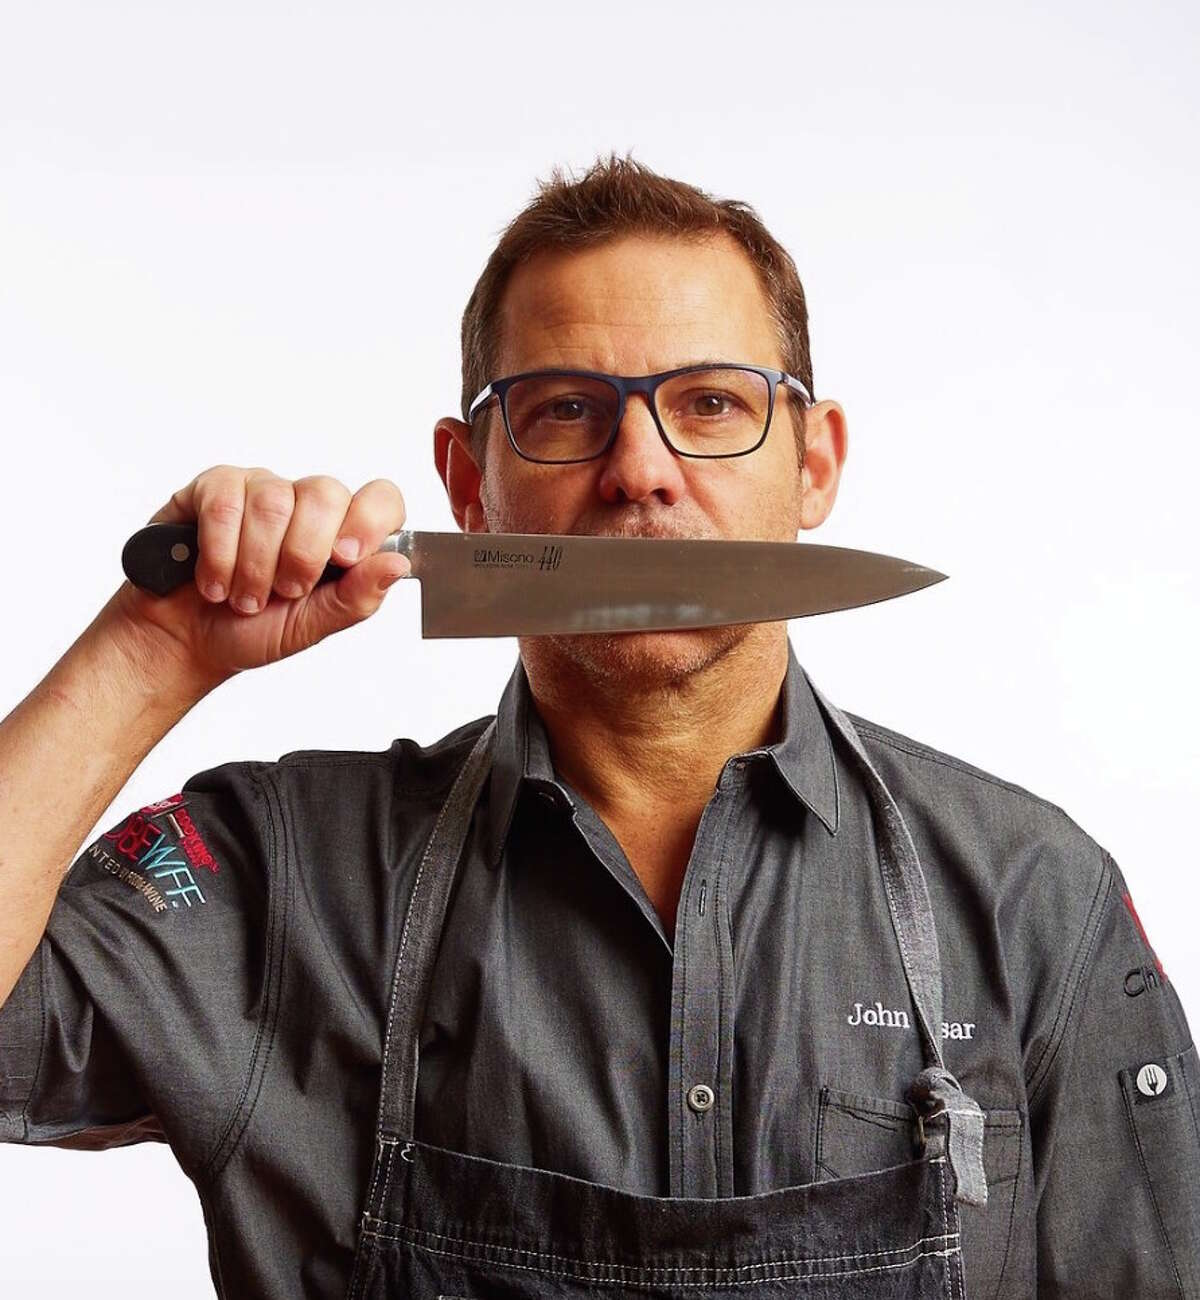 Chef John Tesar will partner with chef Austin Simmons of Tris restaurant in The Woodlands for the next CollaborEIGHT dinner series at Tris on Jan. 14.